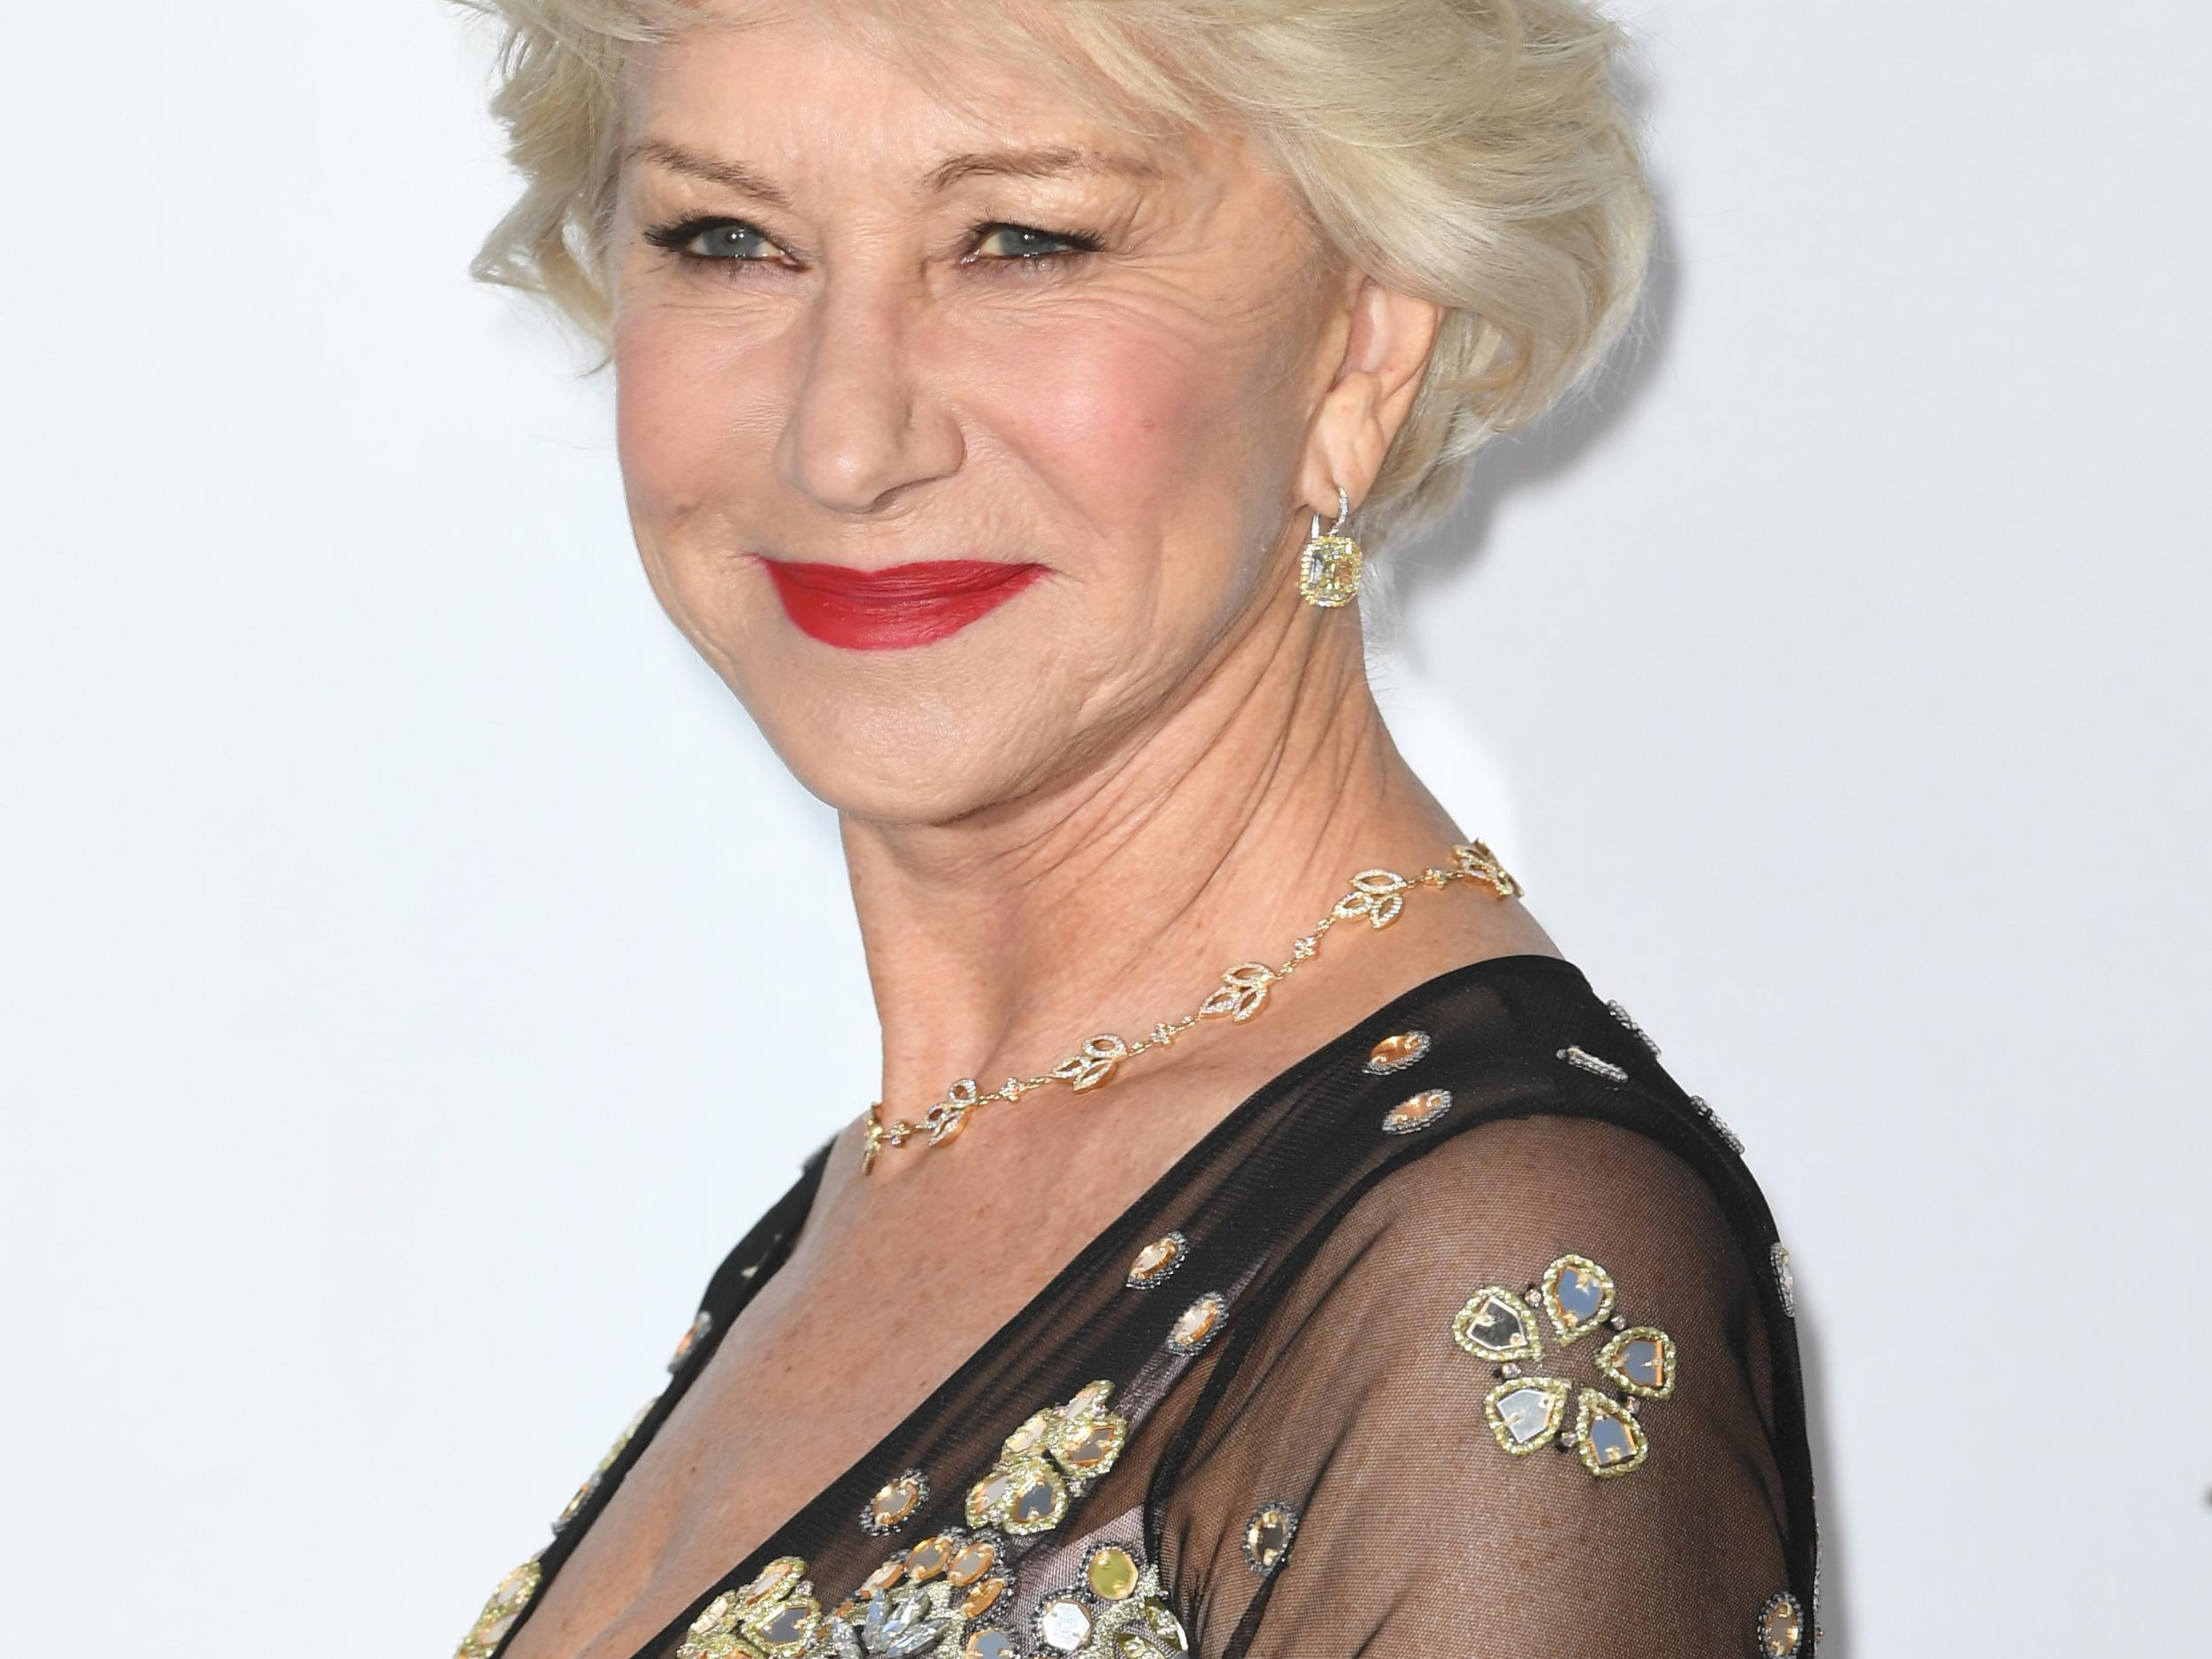 L'Oreal ambassador Helen Mirren says moisturiser probably does 'f*** all'